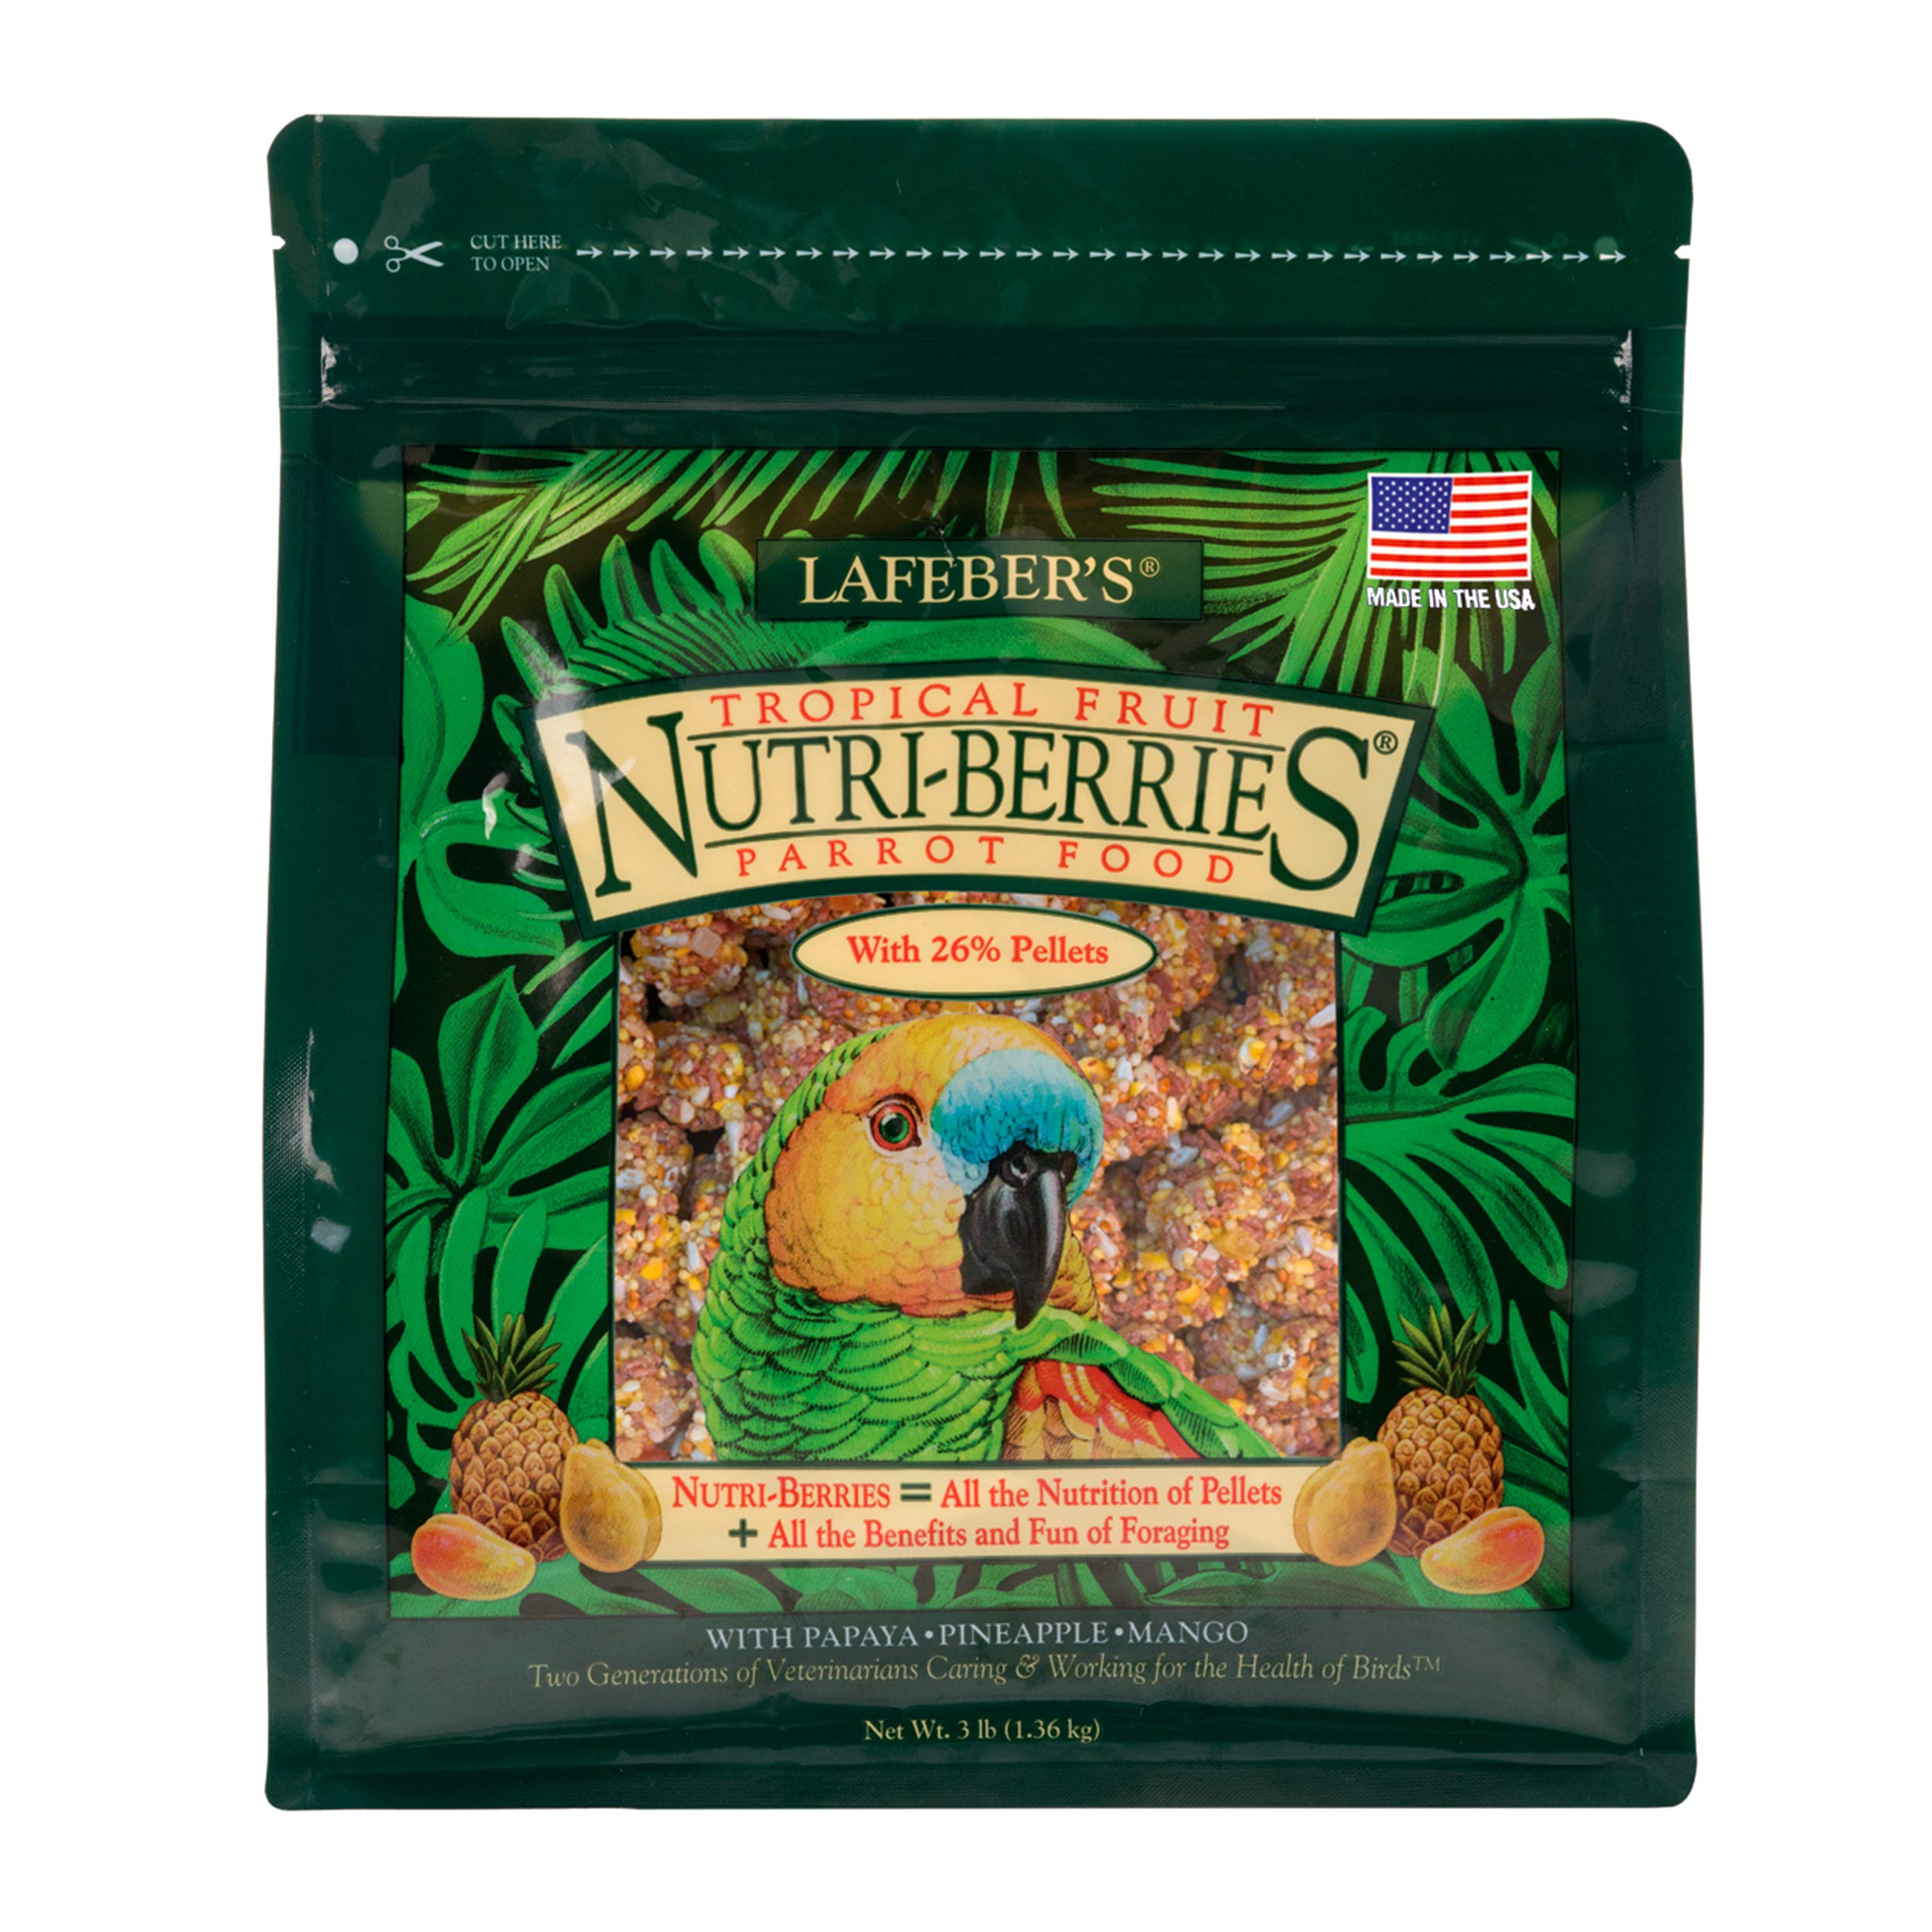 LAFEBER'S Tropical Fruit Nutri-Berries Pet Bird Food, Made with Non-GMO and Human-Grade Ingredients, for Parrots, 3 lb by LAFEBER'S